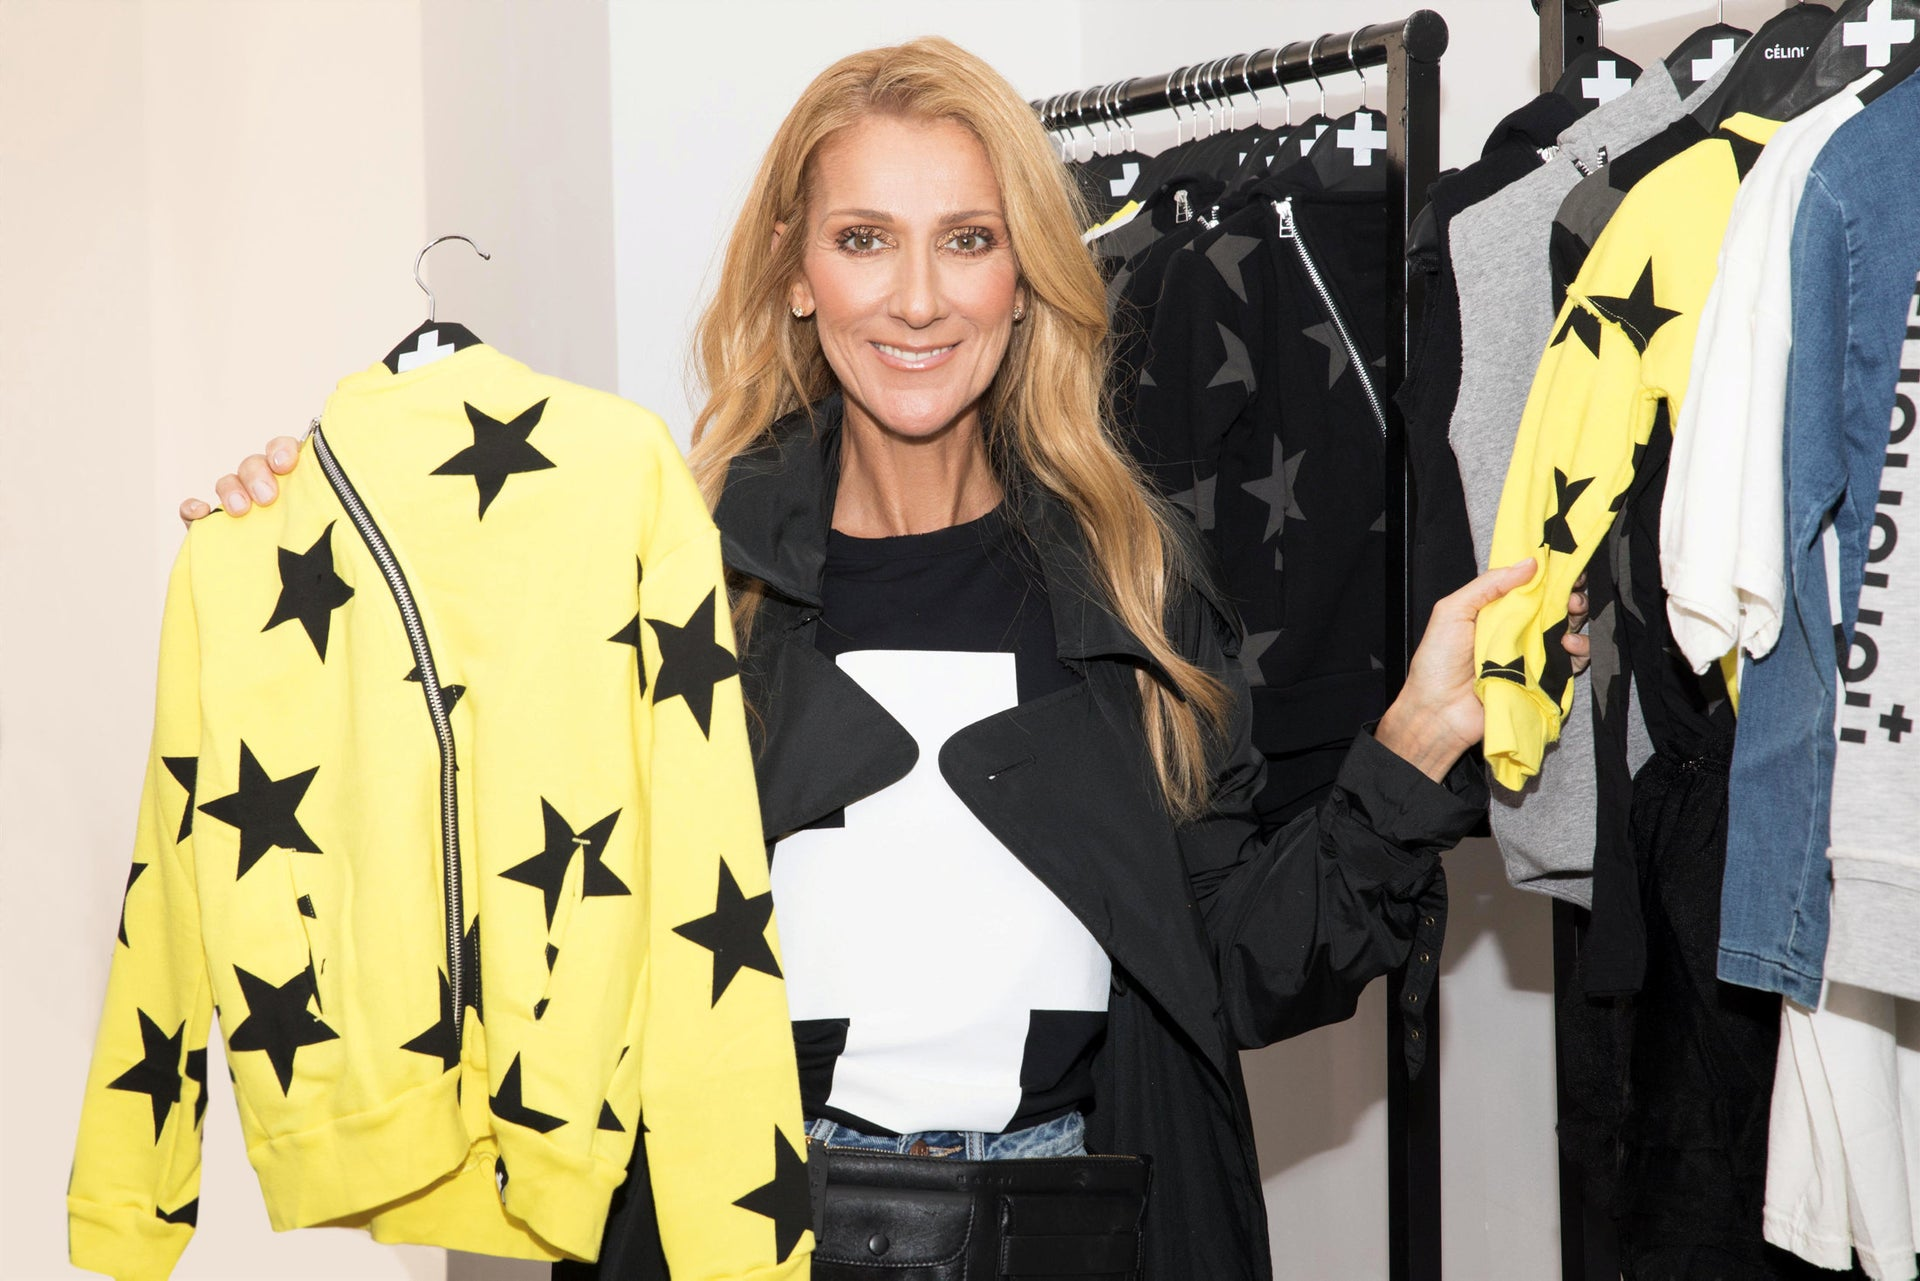 Pop superstar Celine Dion presenting items from Celinununu's collection.